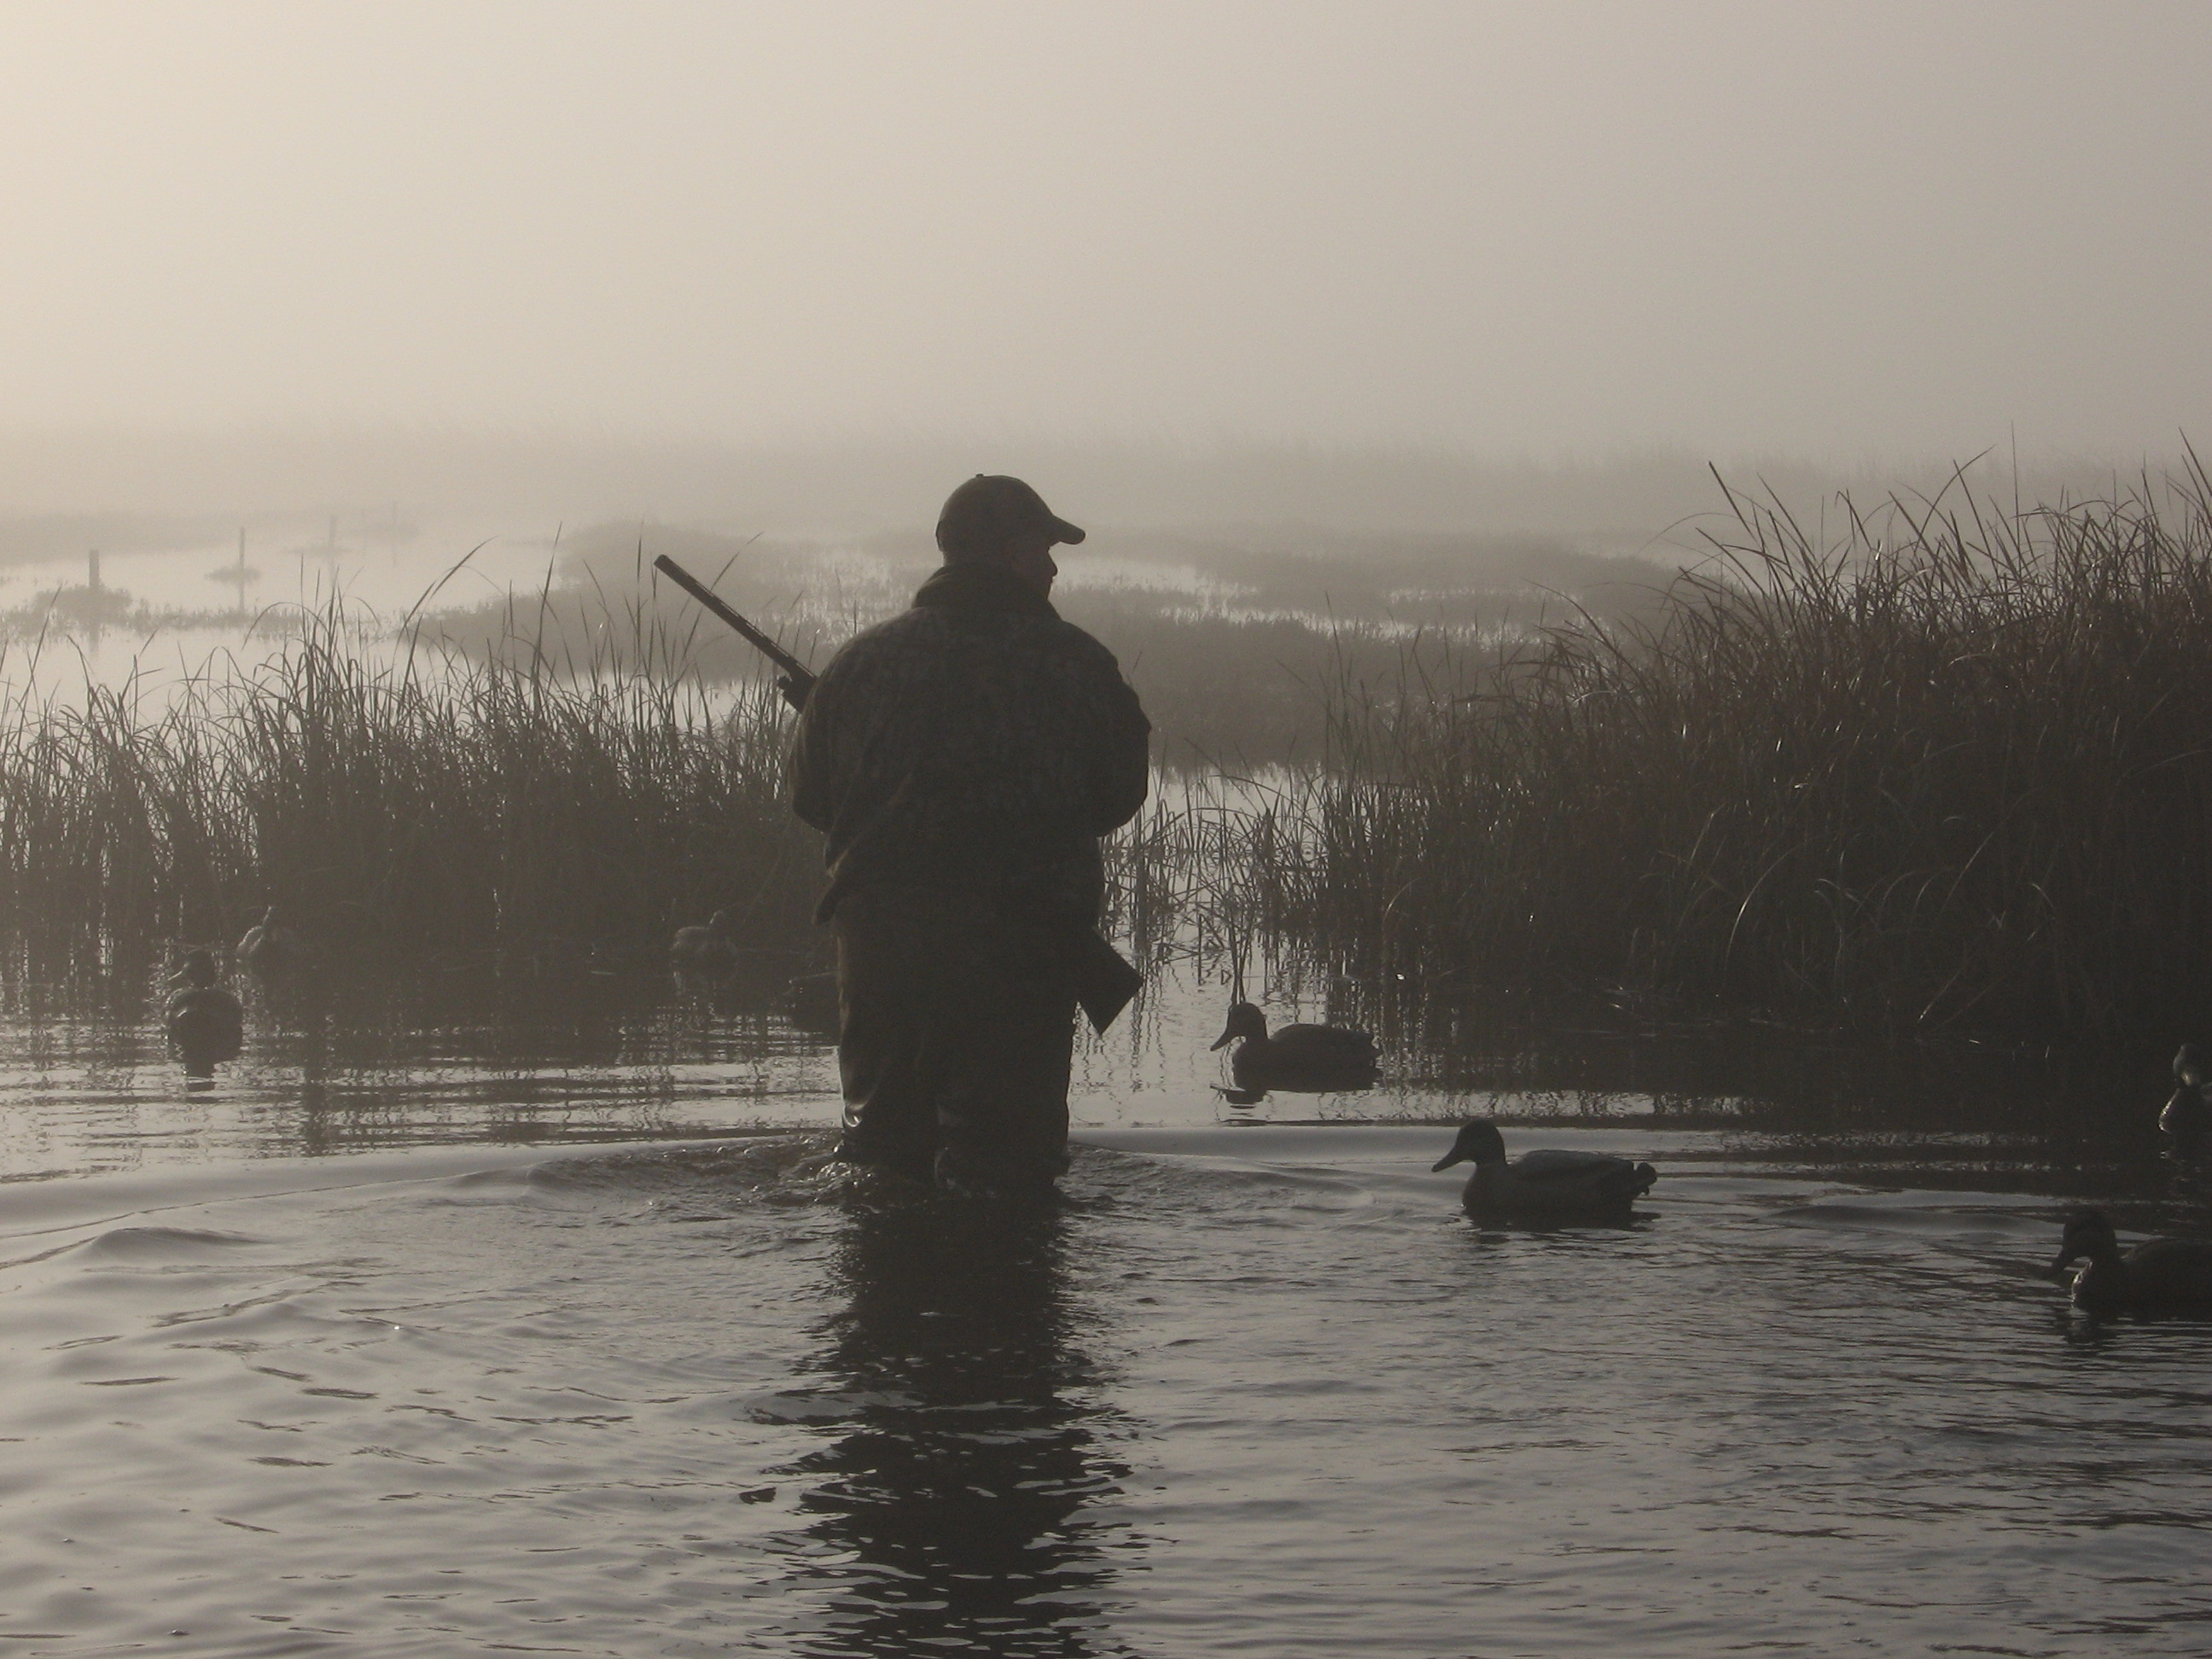 Californias 2012 waterfowl season is quickly approaching and the 2592x1944